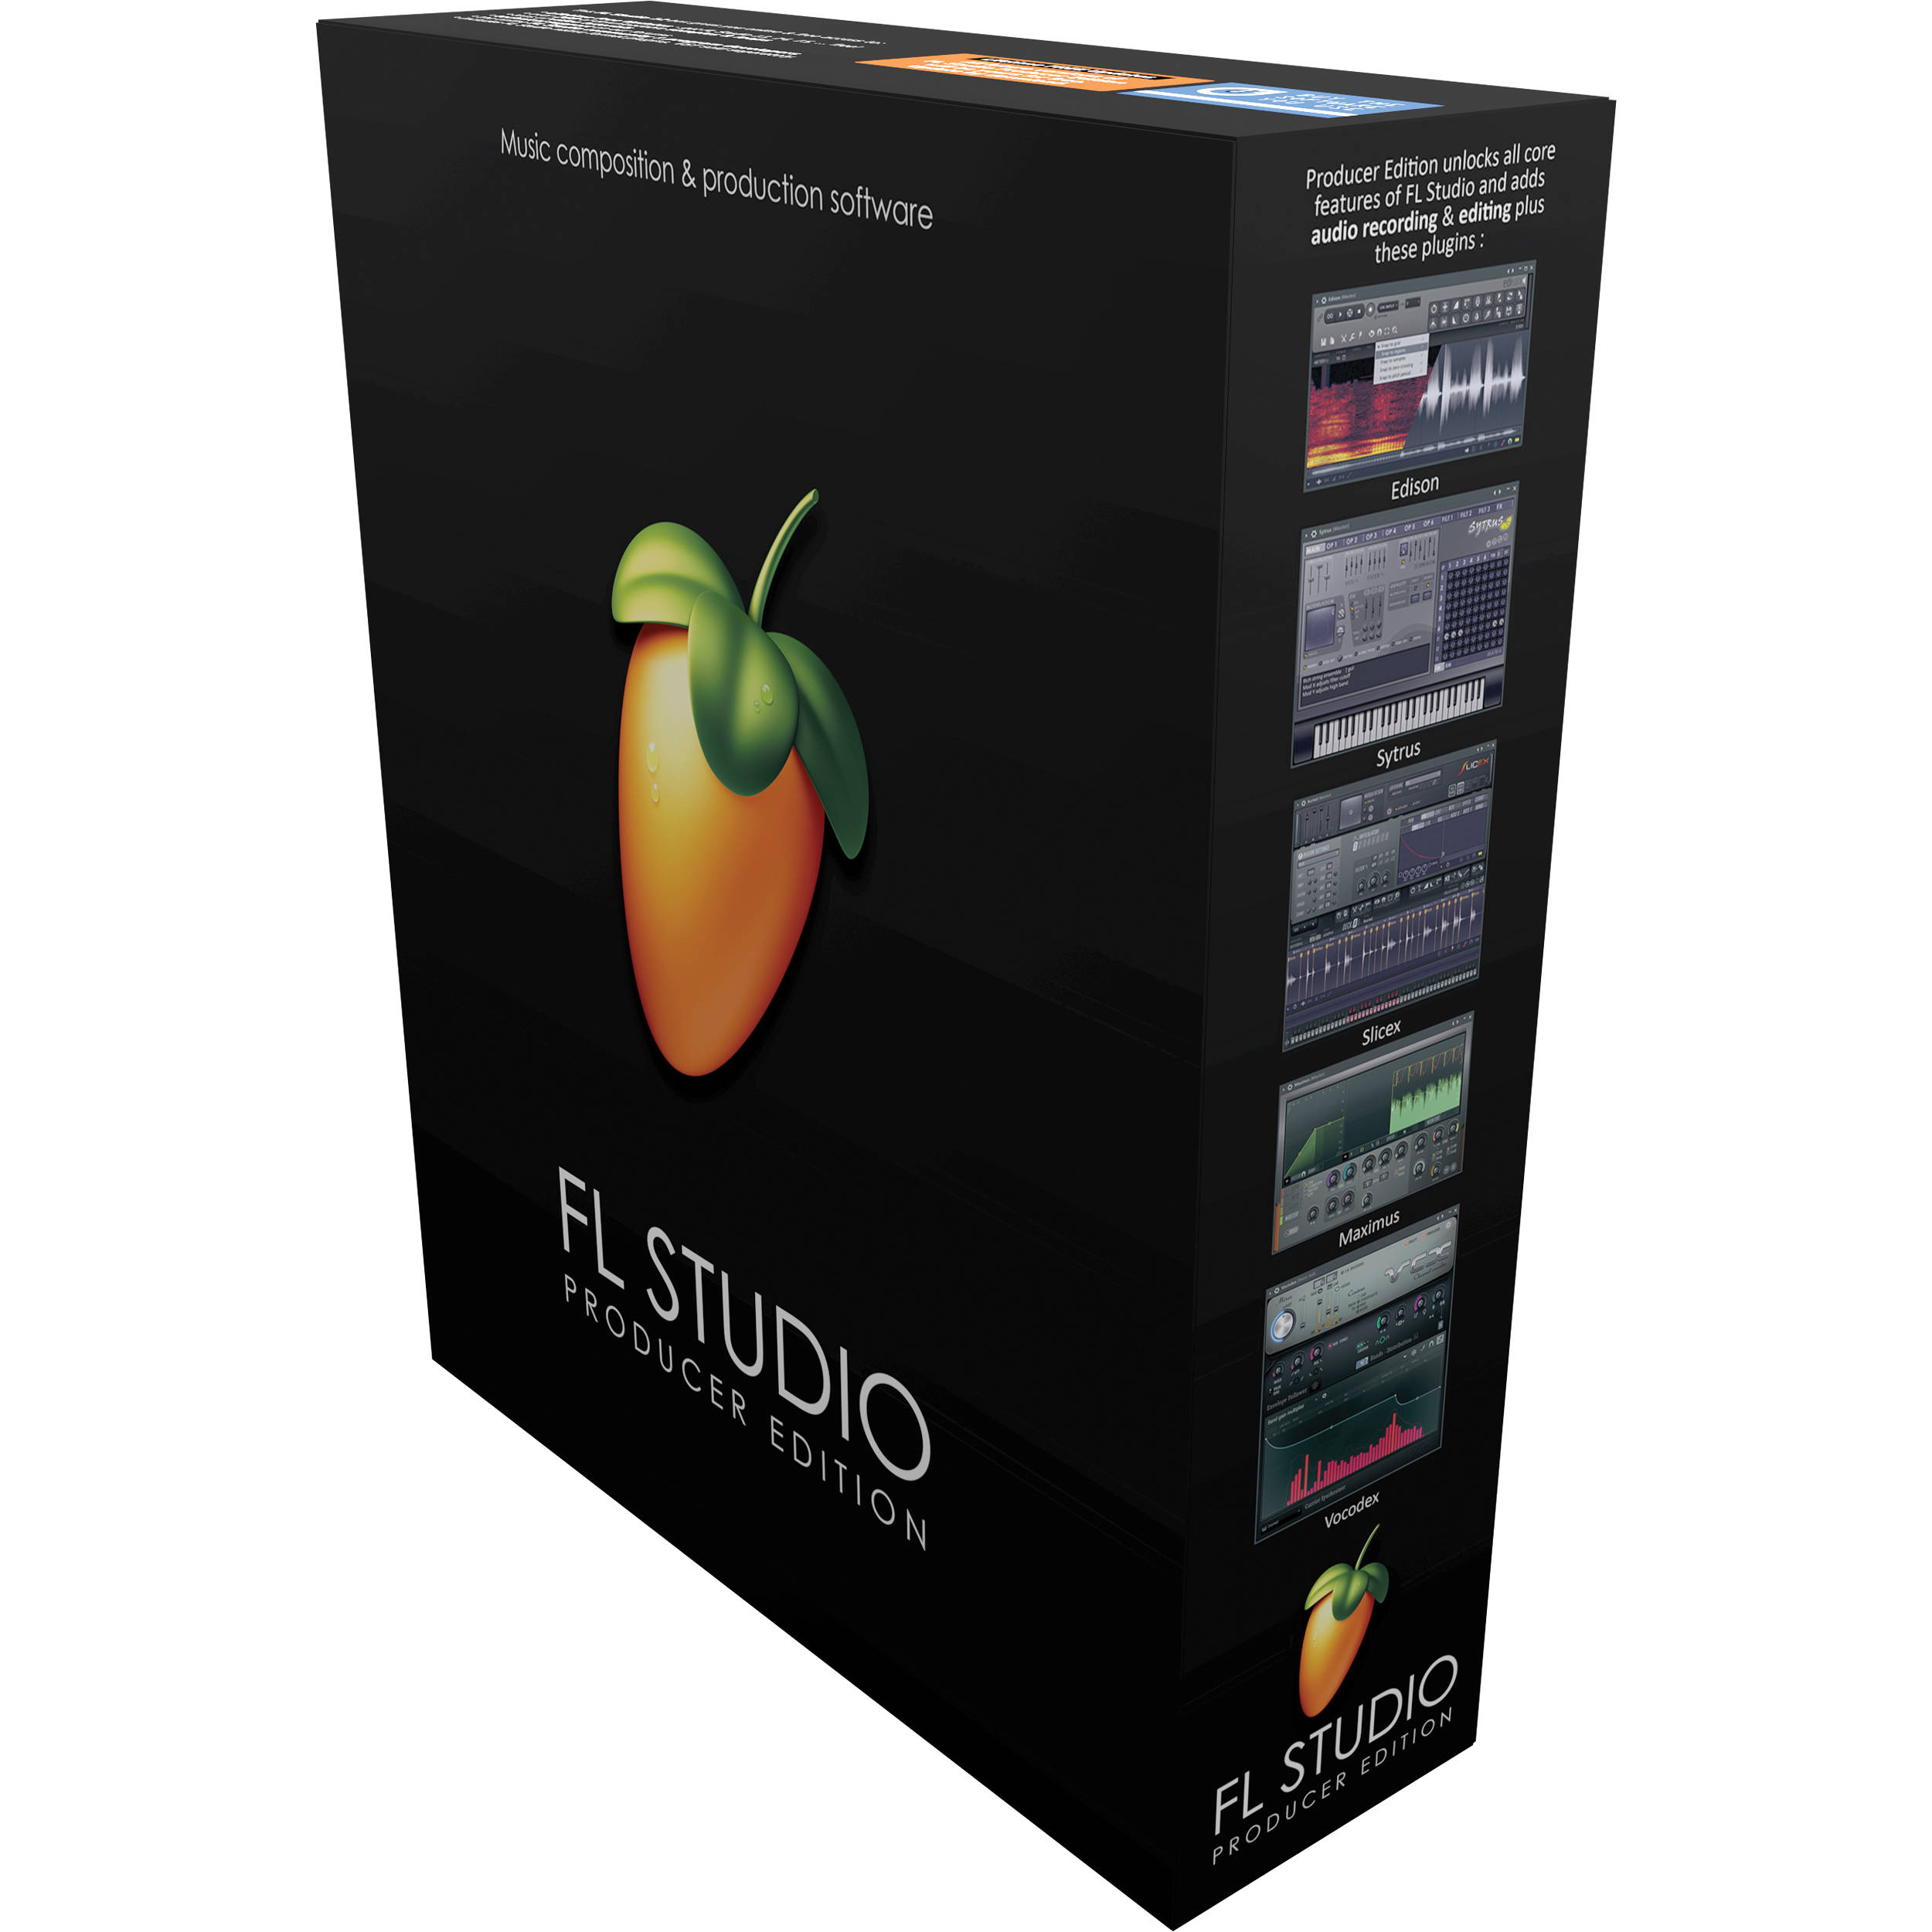 Image-Line FL Studio 12 Producer Edition - Complete Music Production  Software (Download)